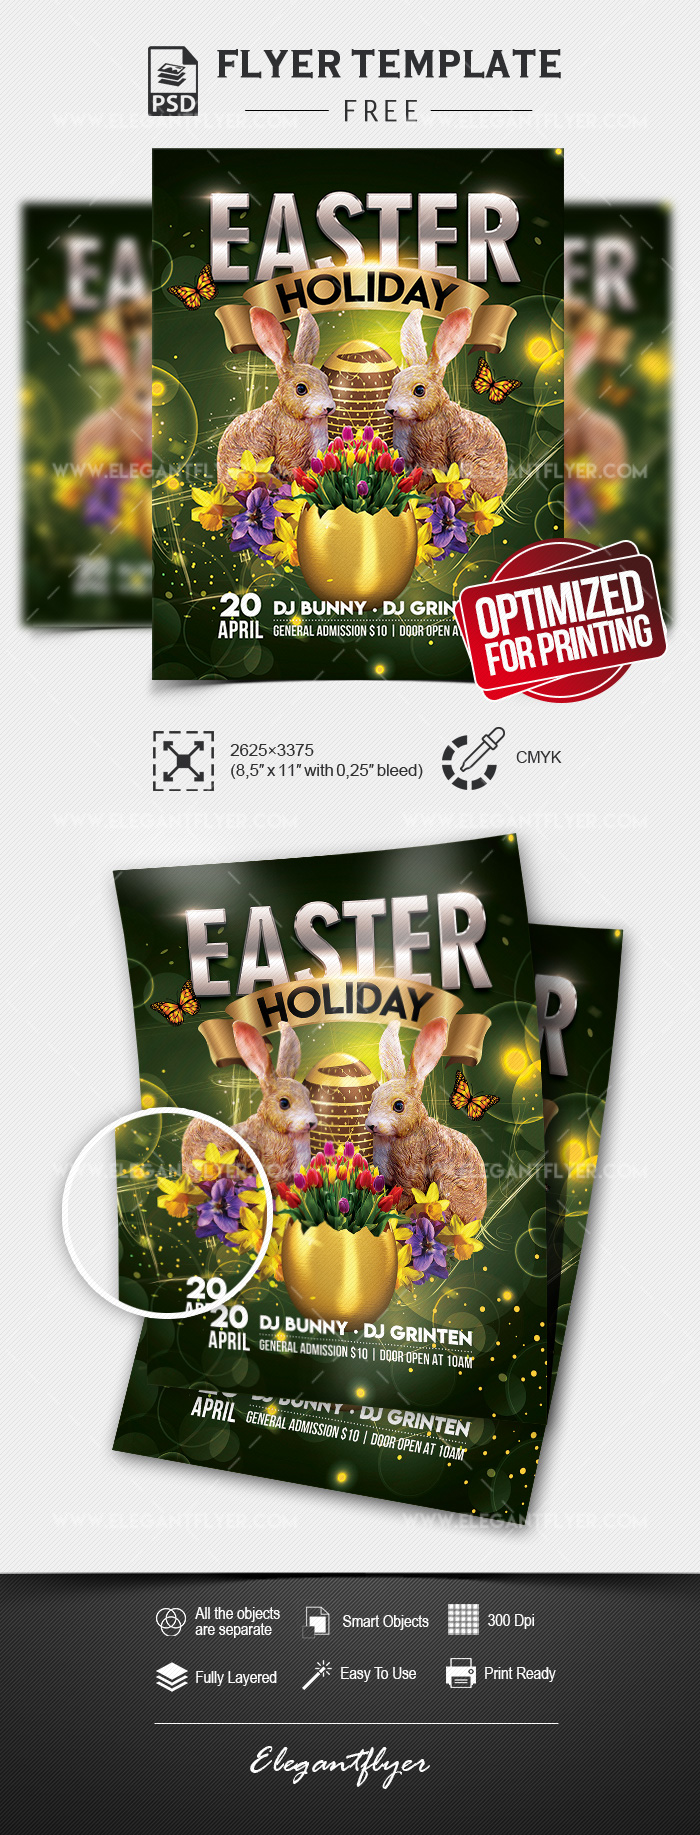 Easter Holiday – Free Flyer PSD Template